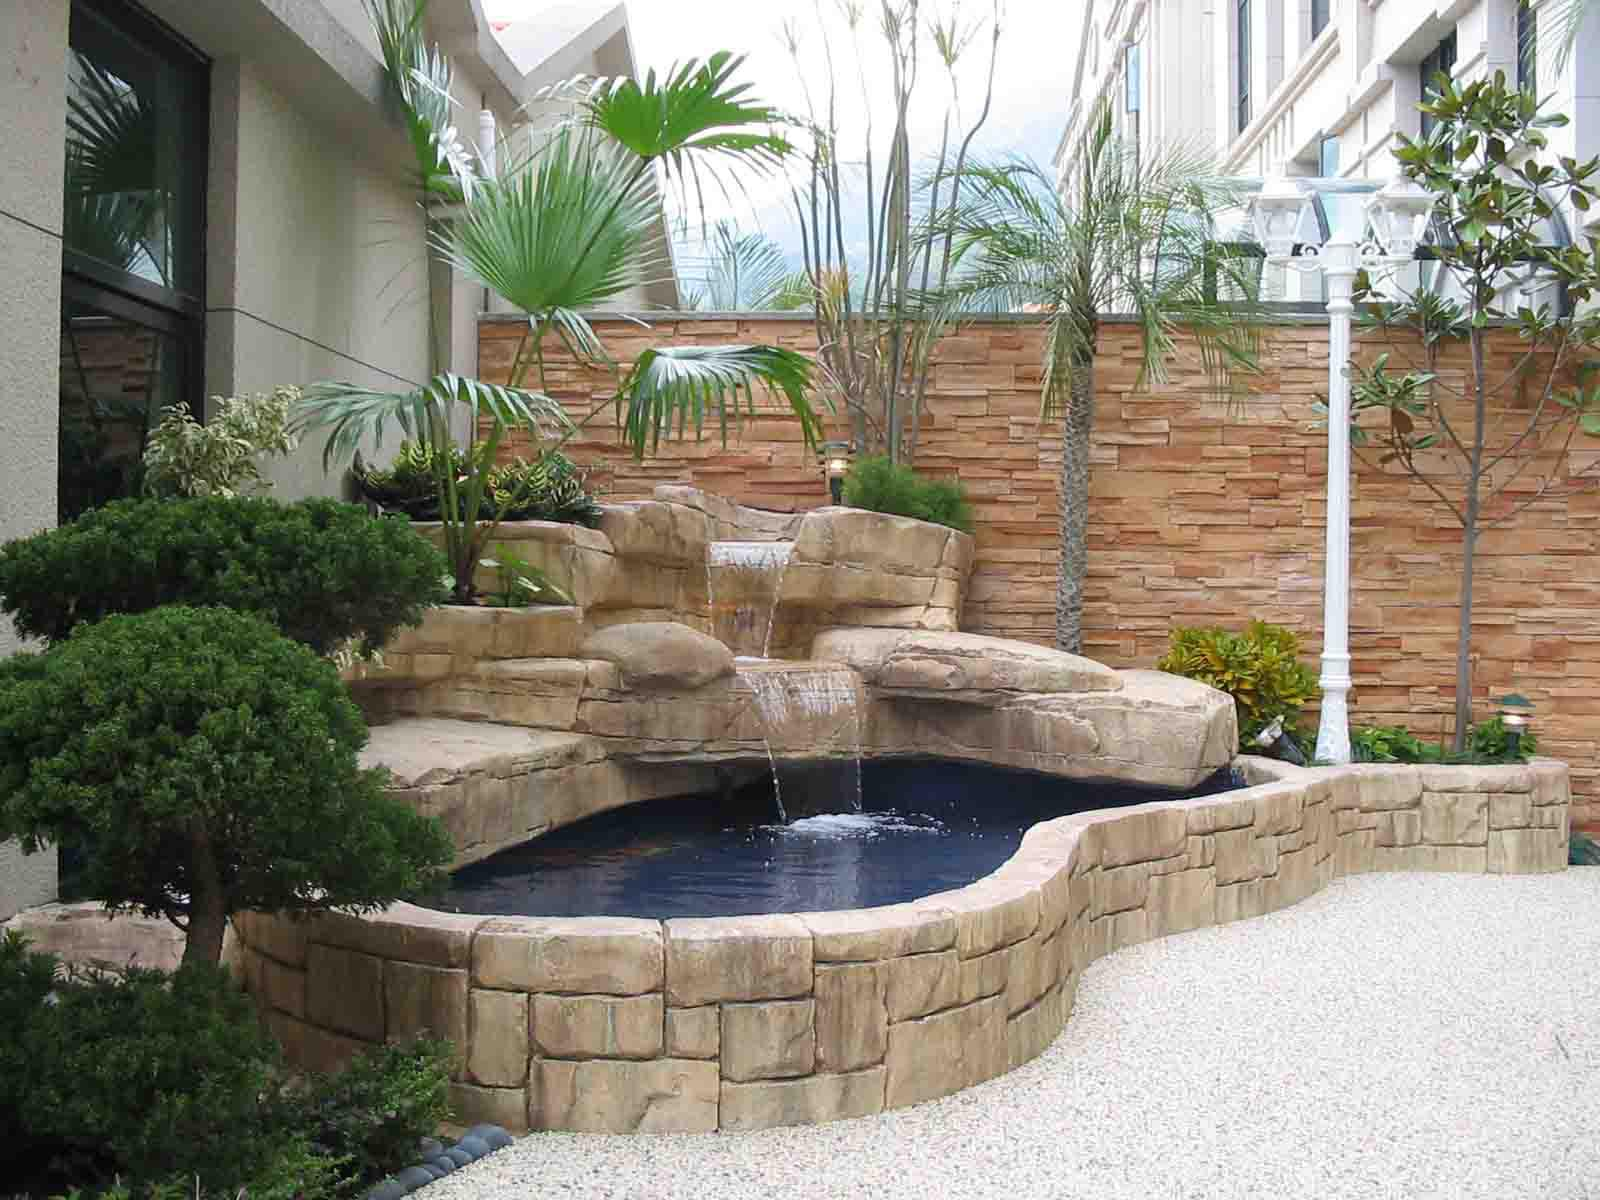 Fish pond garden design backyard design ideas for Backyard fish pond